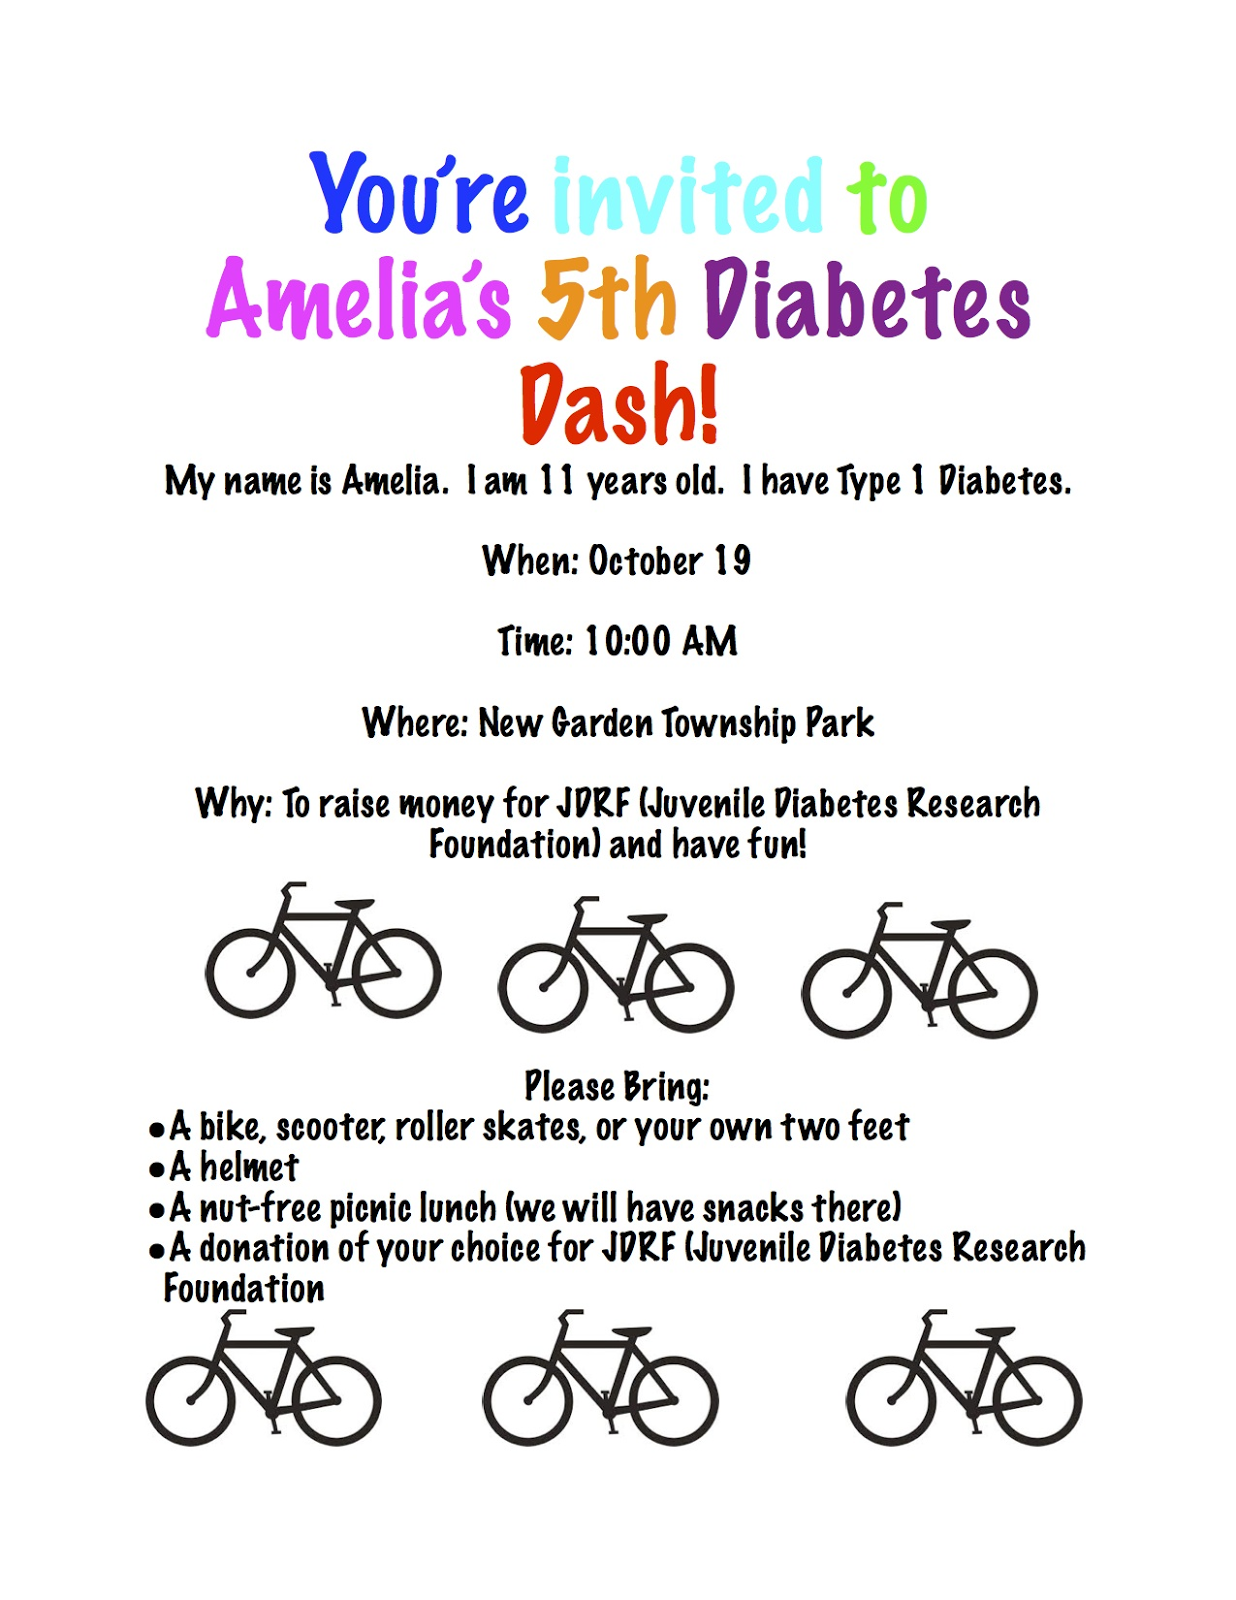 Amelia's 5th Diabetes Dash!